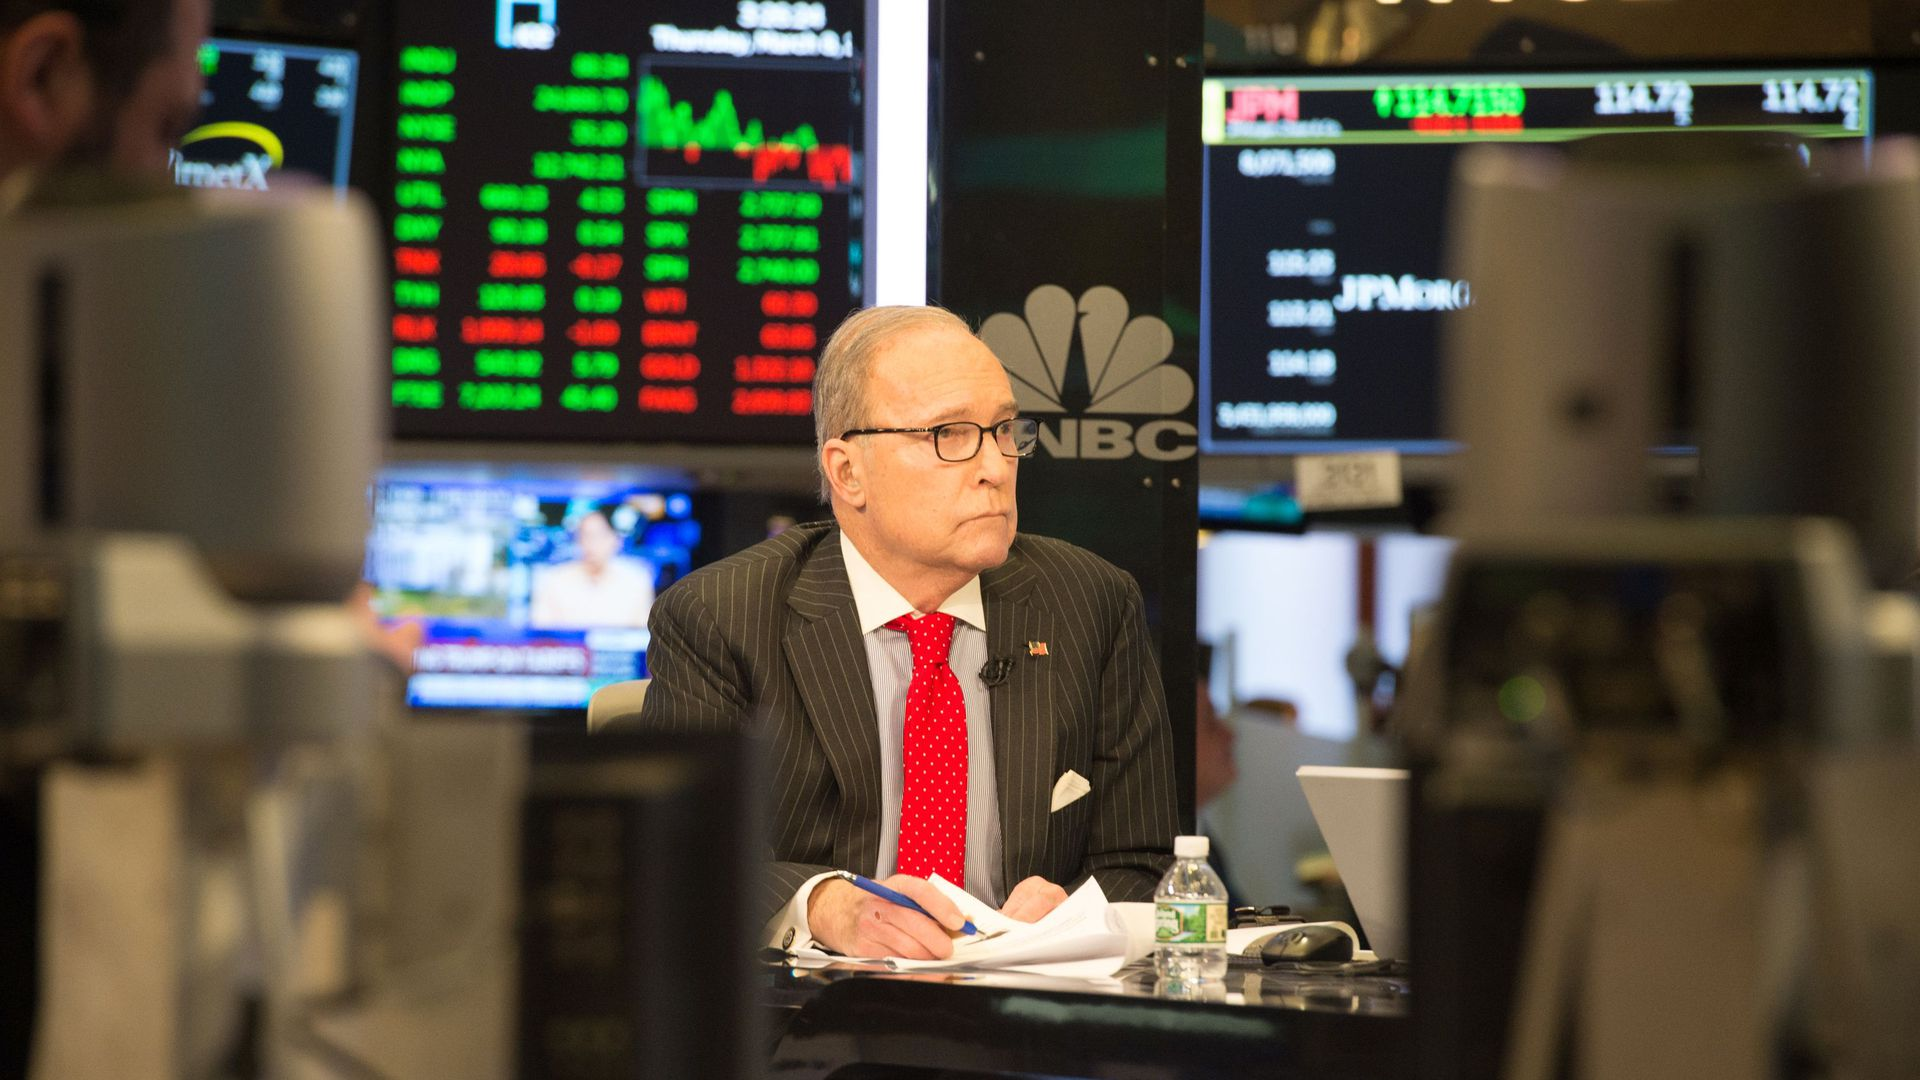 Kudlow in a TV studio